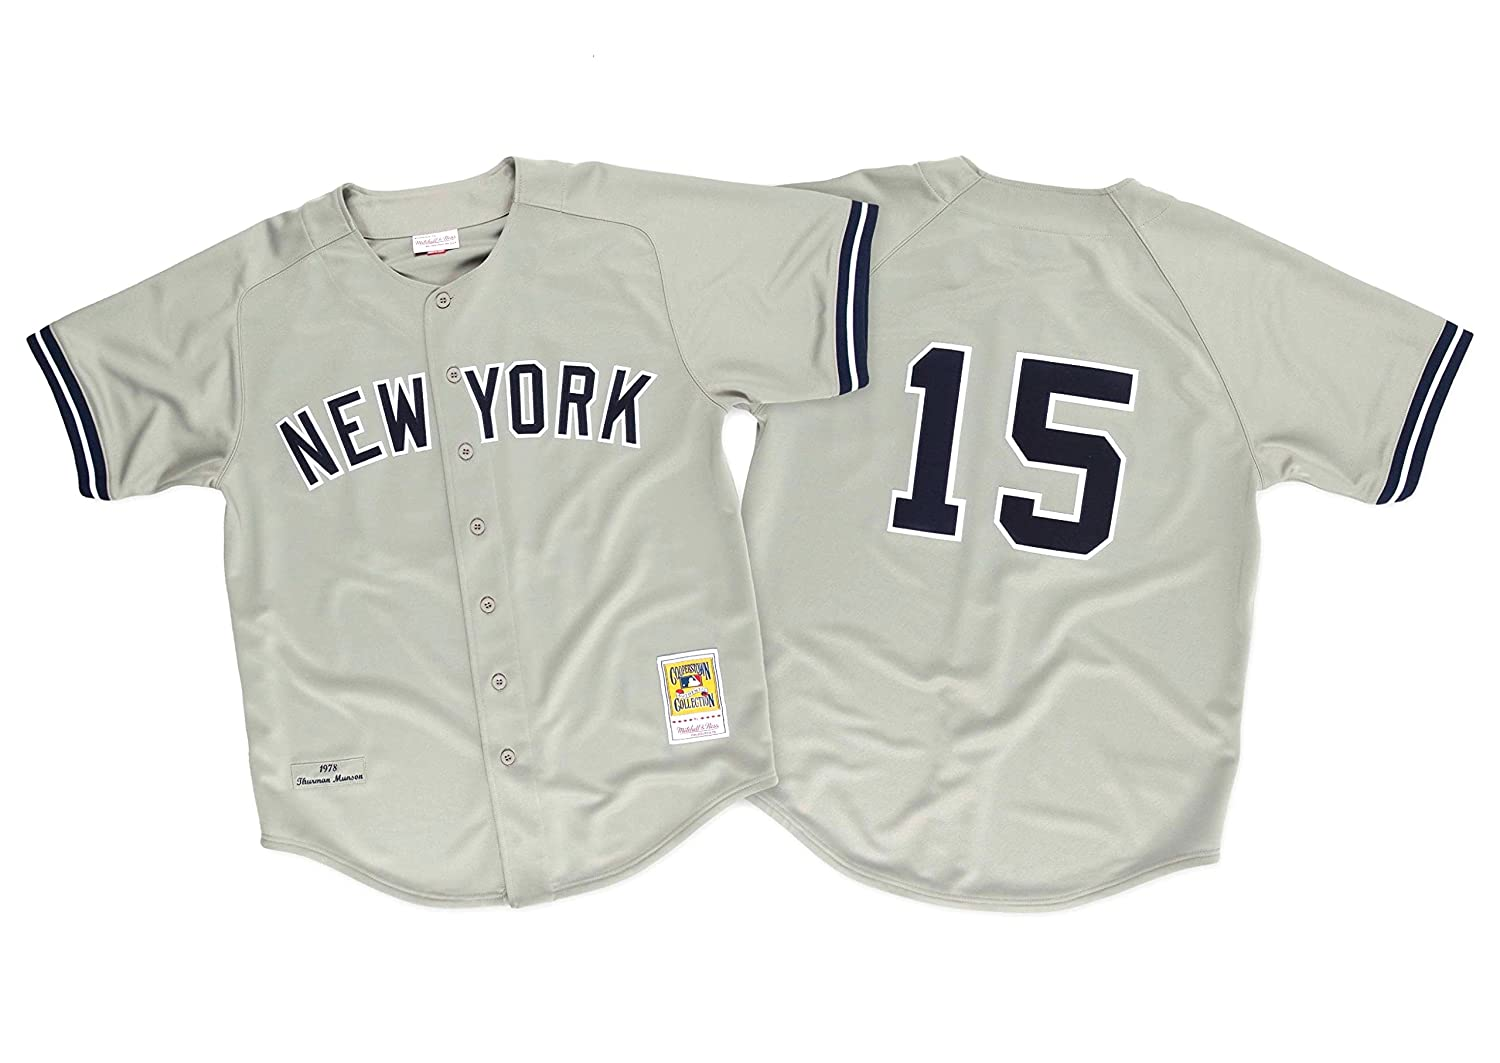 reputable site 6a1ba 794f5 Amazon.com: Thurman Munson 1978 New York Yankees Authentic ...